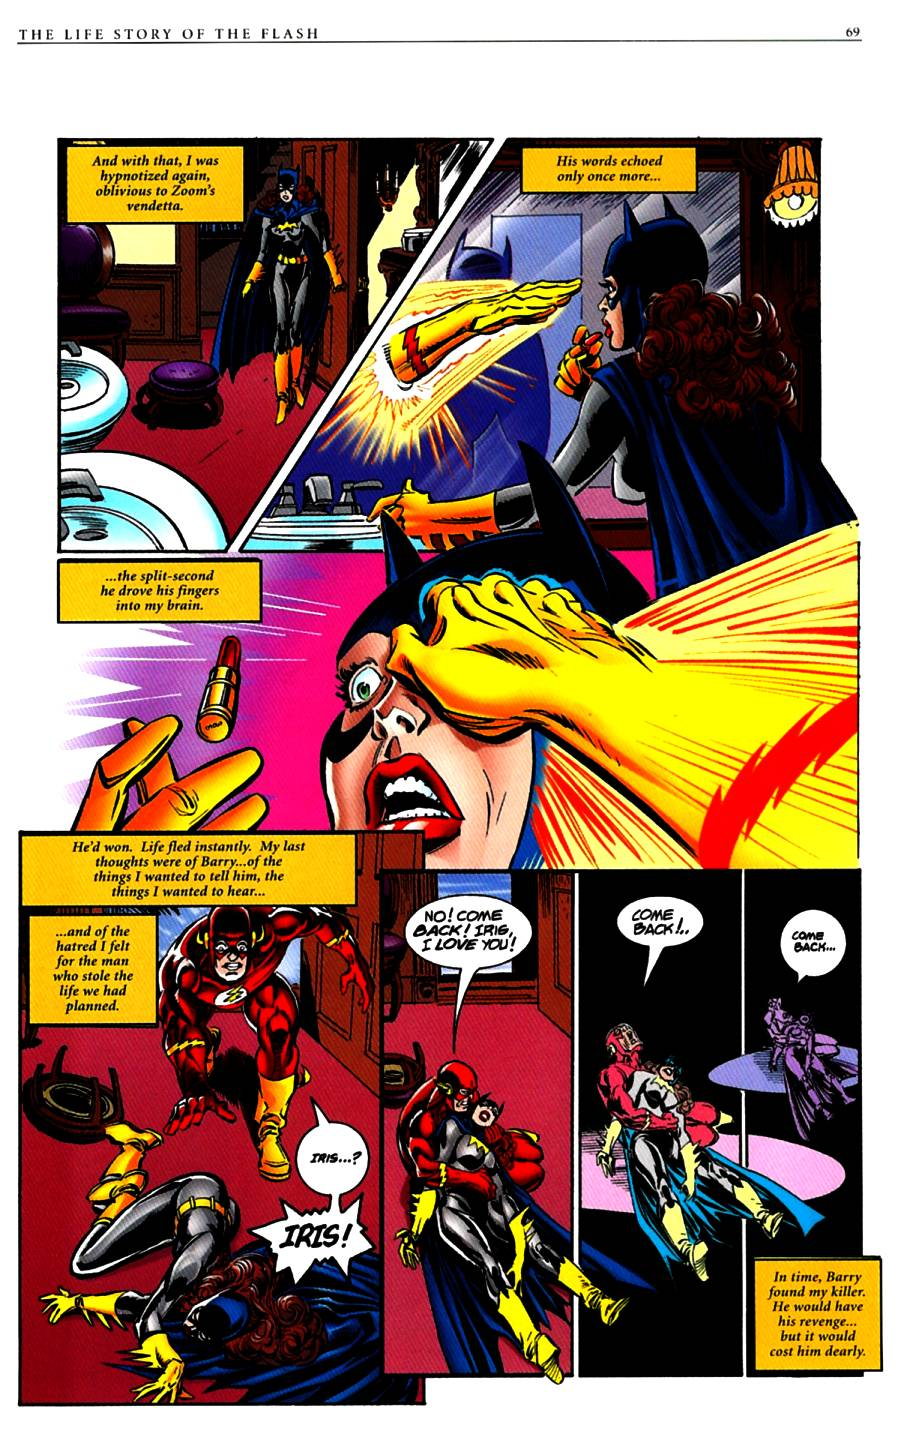 Read online The Life Story of the Flash comic -  Issue # Full - 71